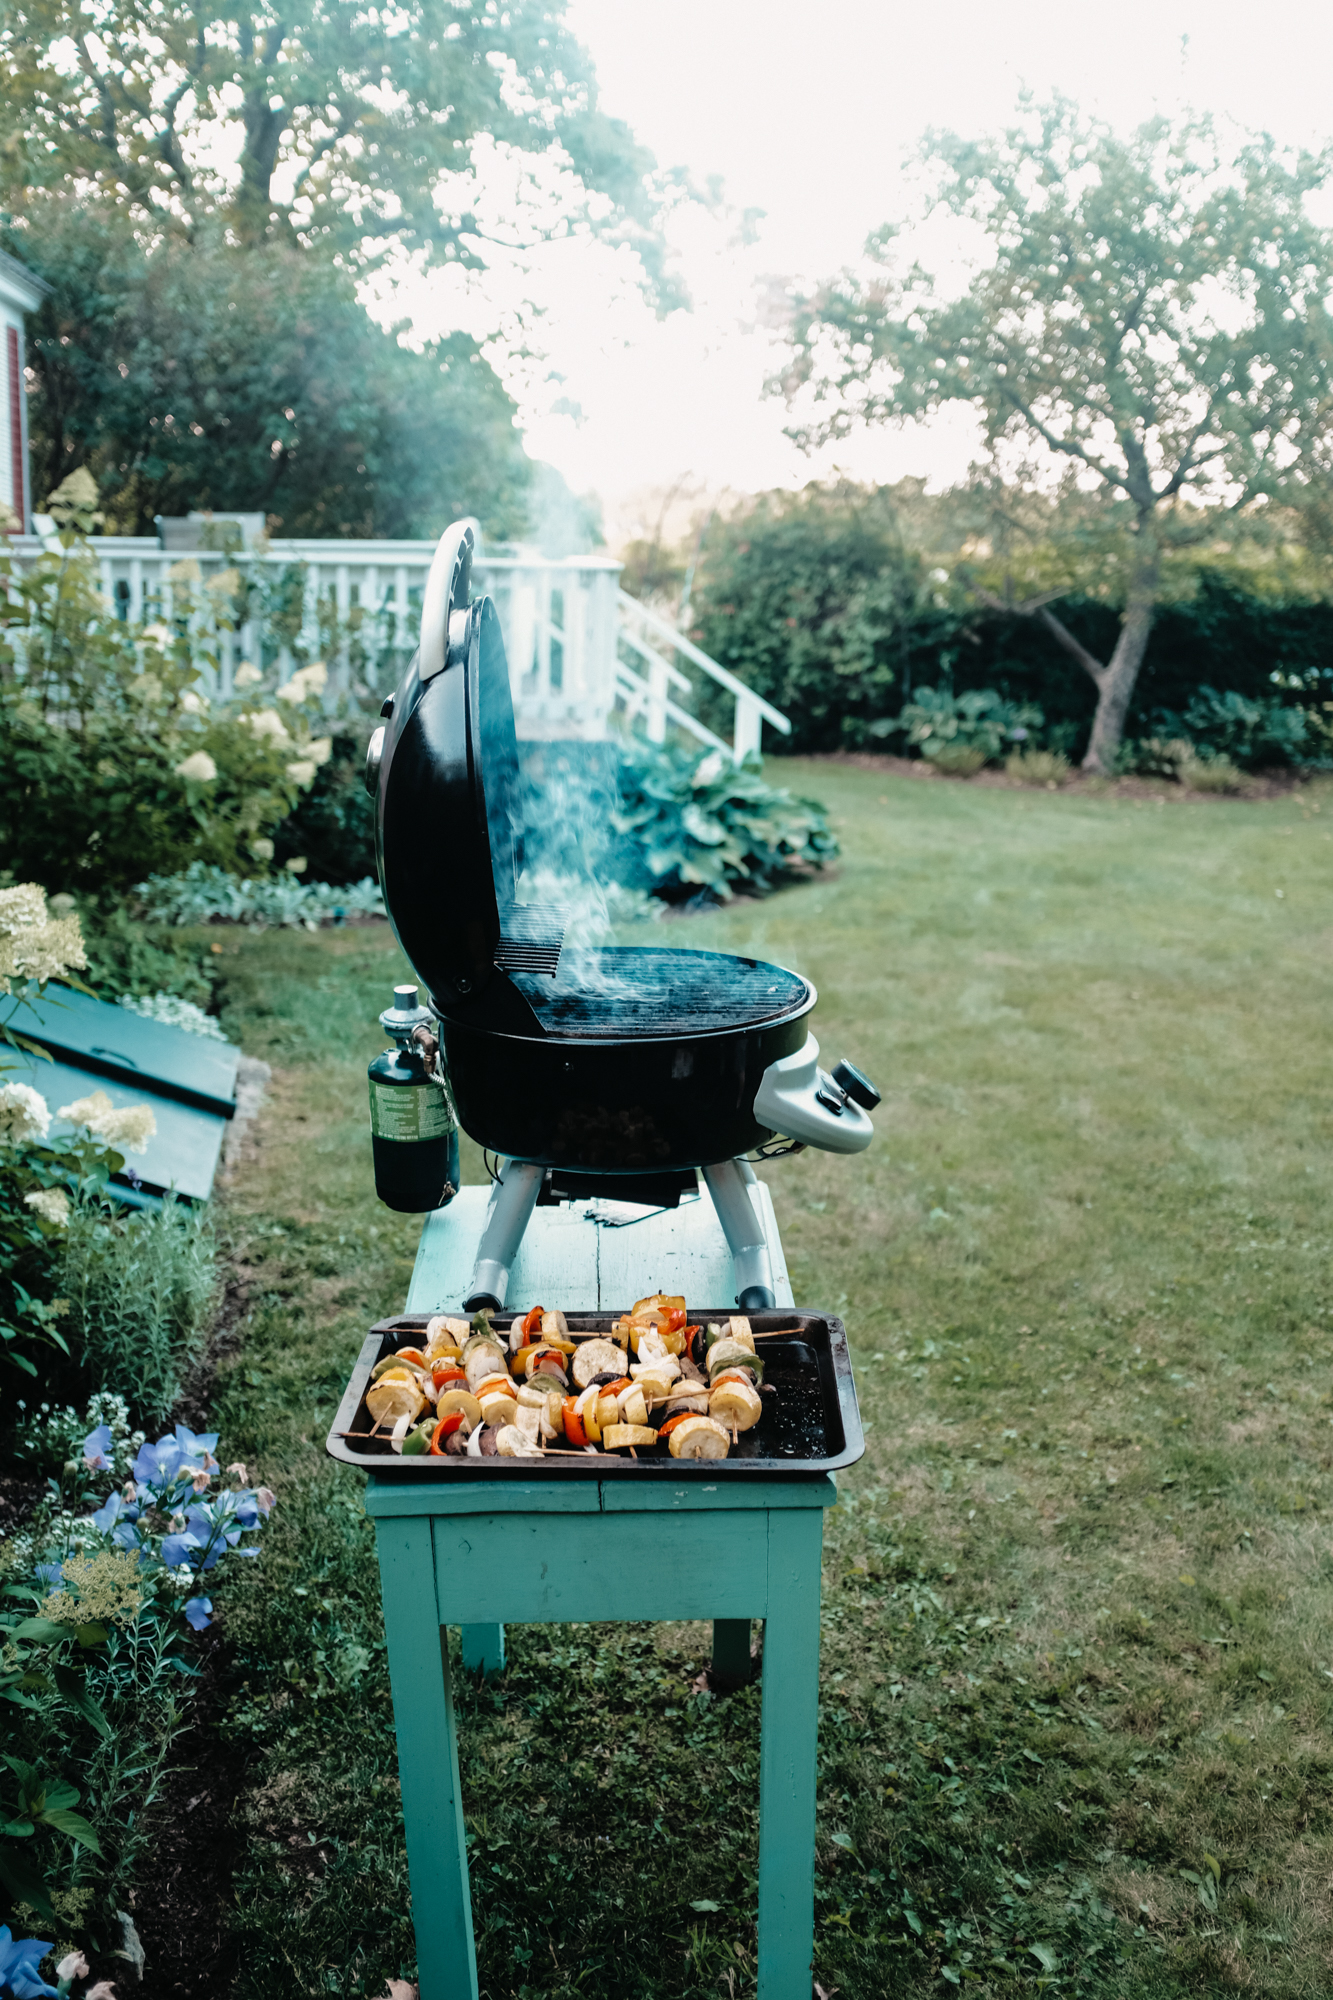 A grill with roasting vegetables in a backyard in summer, New Hampshire, New England.